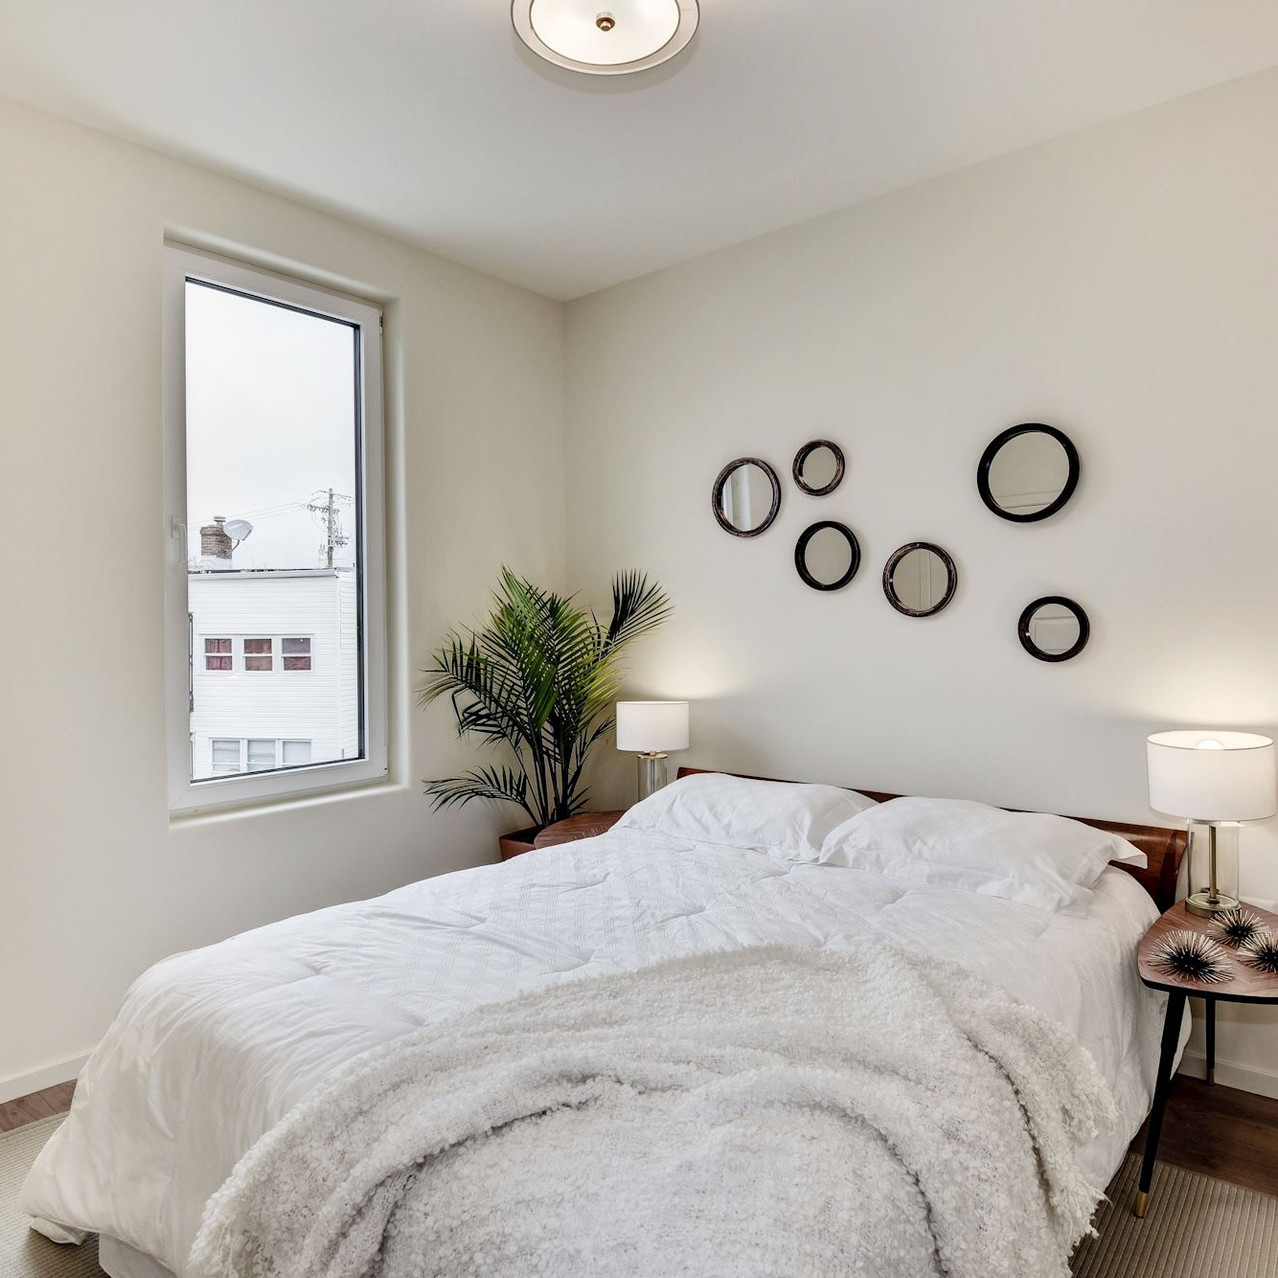 Bring bedrooms with 2x6' windows!